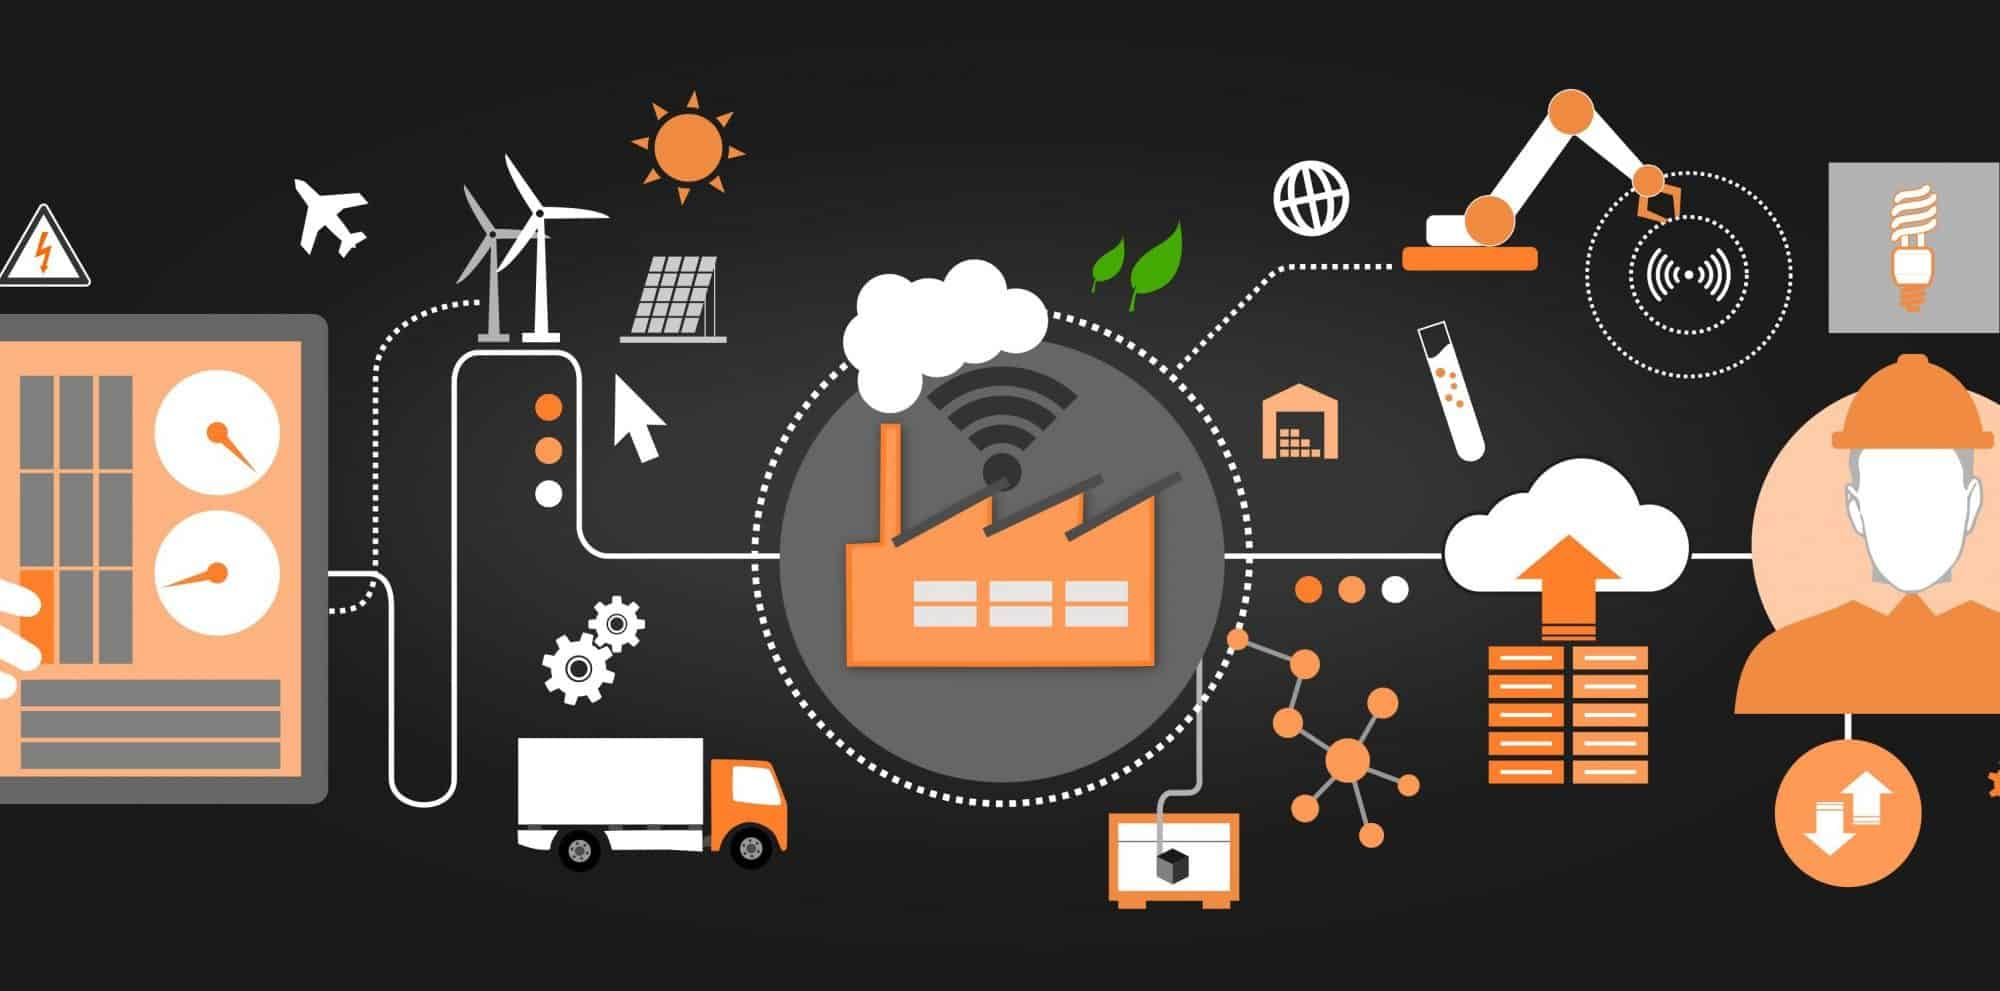 industry sector apps important